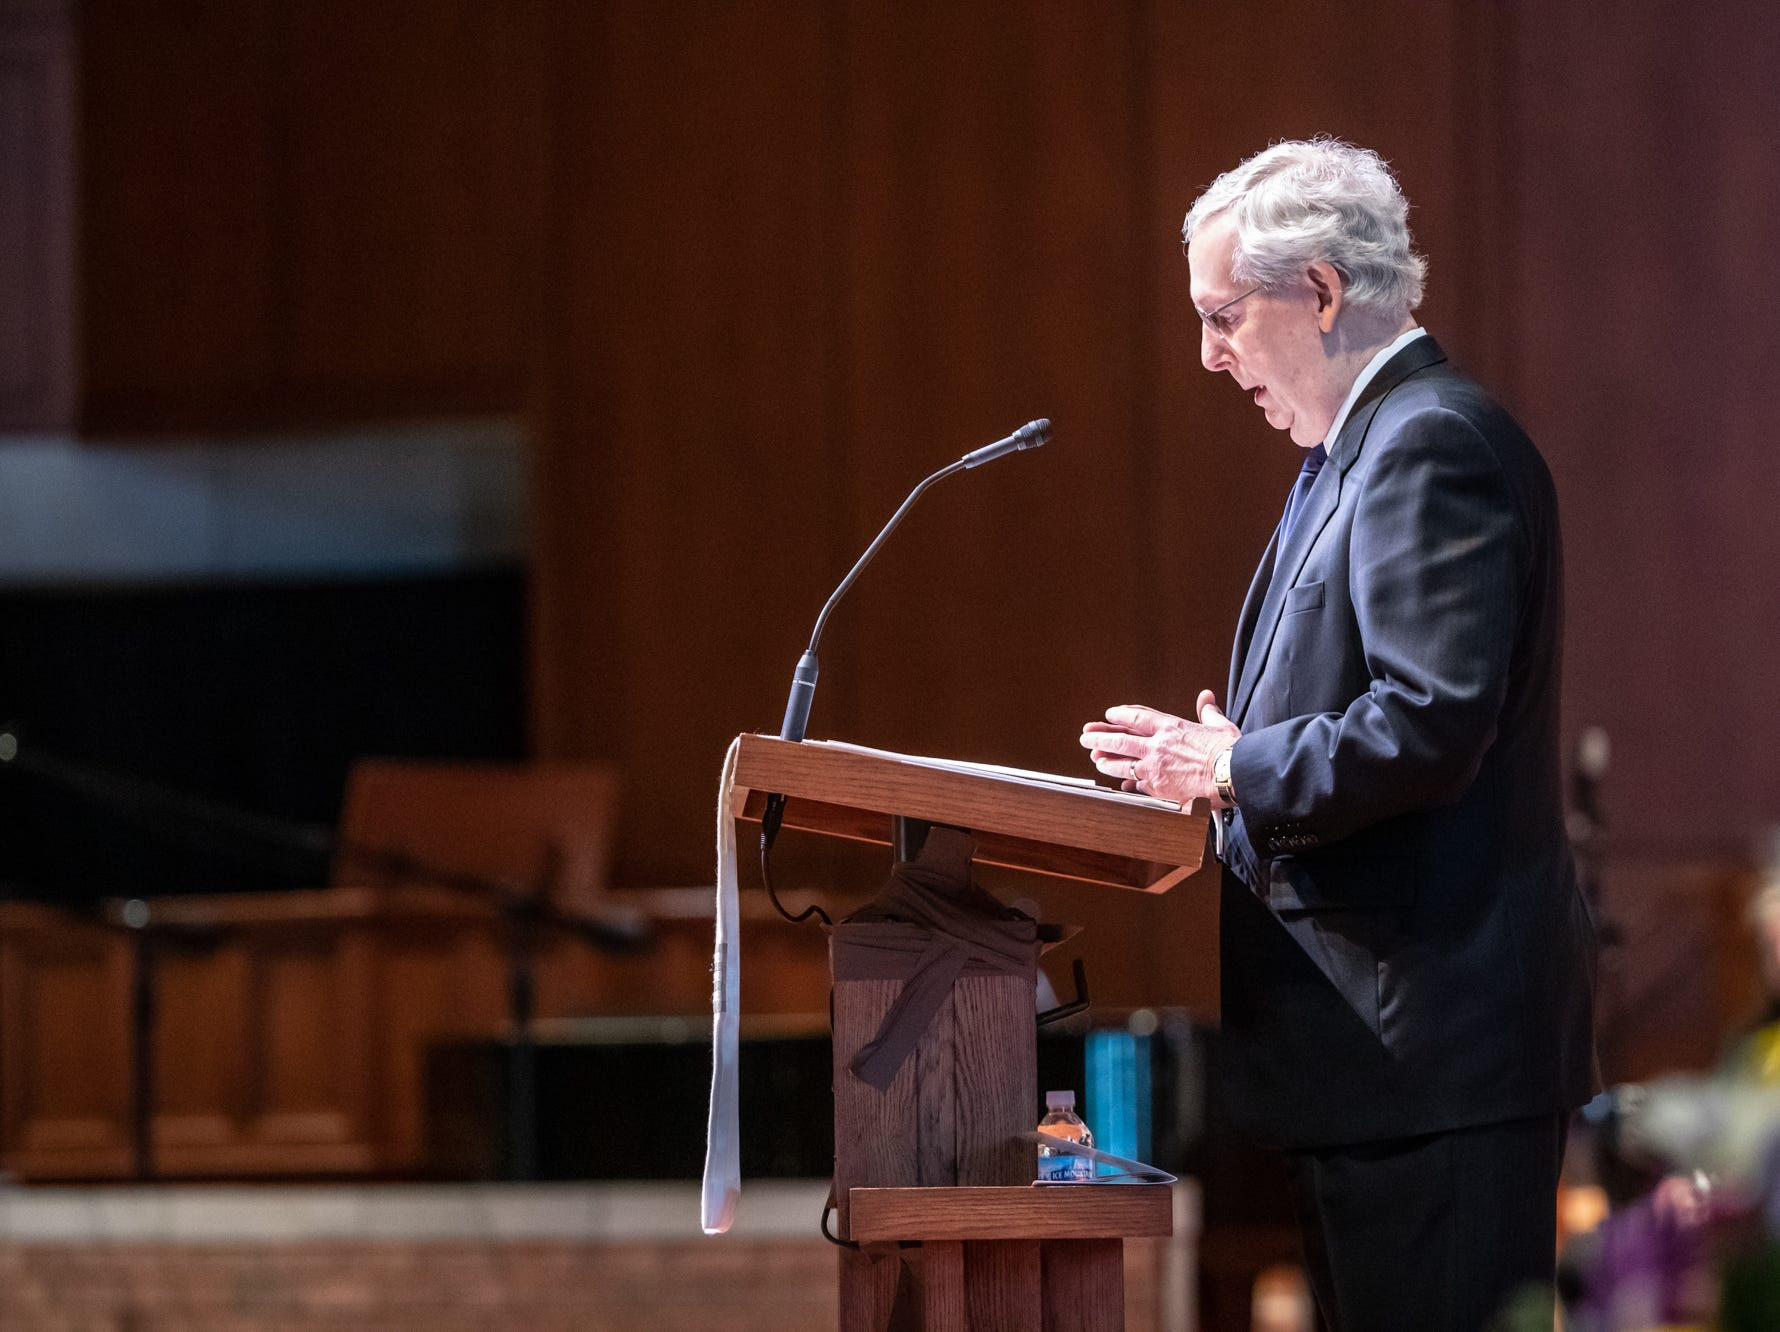 U.S. Sen. Mitch McConnell pays tribute to former U.S. Sen. Richard Lugar during a memorial service at Saint Luke's United Methodist Church in Indianapolis, on Wednesday, May 15, 2019. Lugar served as mayor of Indianapolis from 1968 to 1975 and U.S. senator from 1977 to 2013. He died April 28, 2019, at the age of 87.